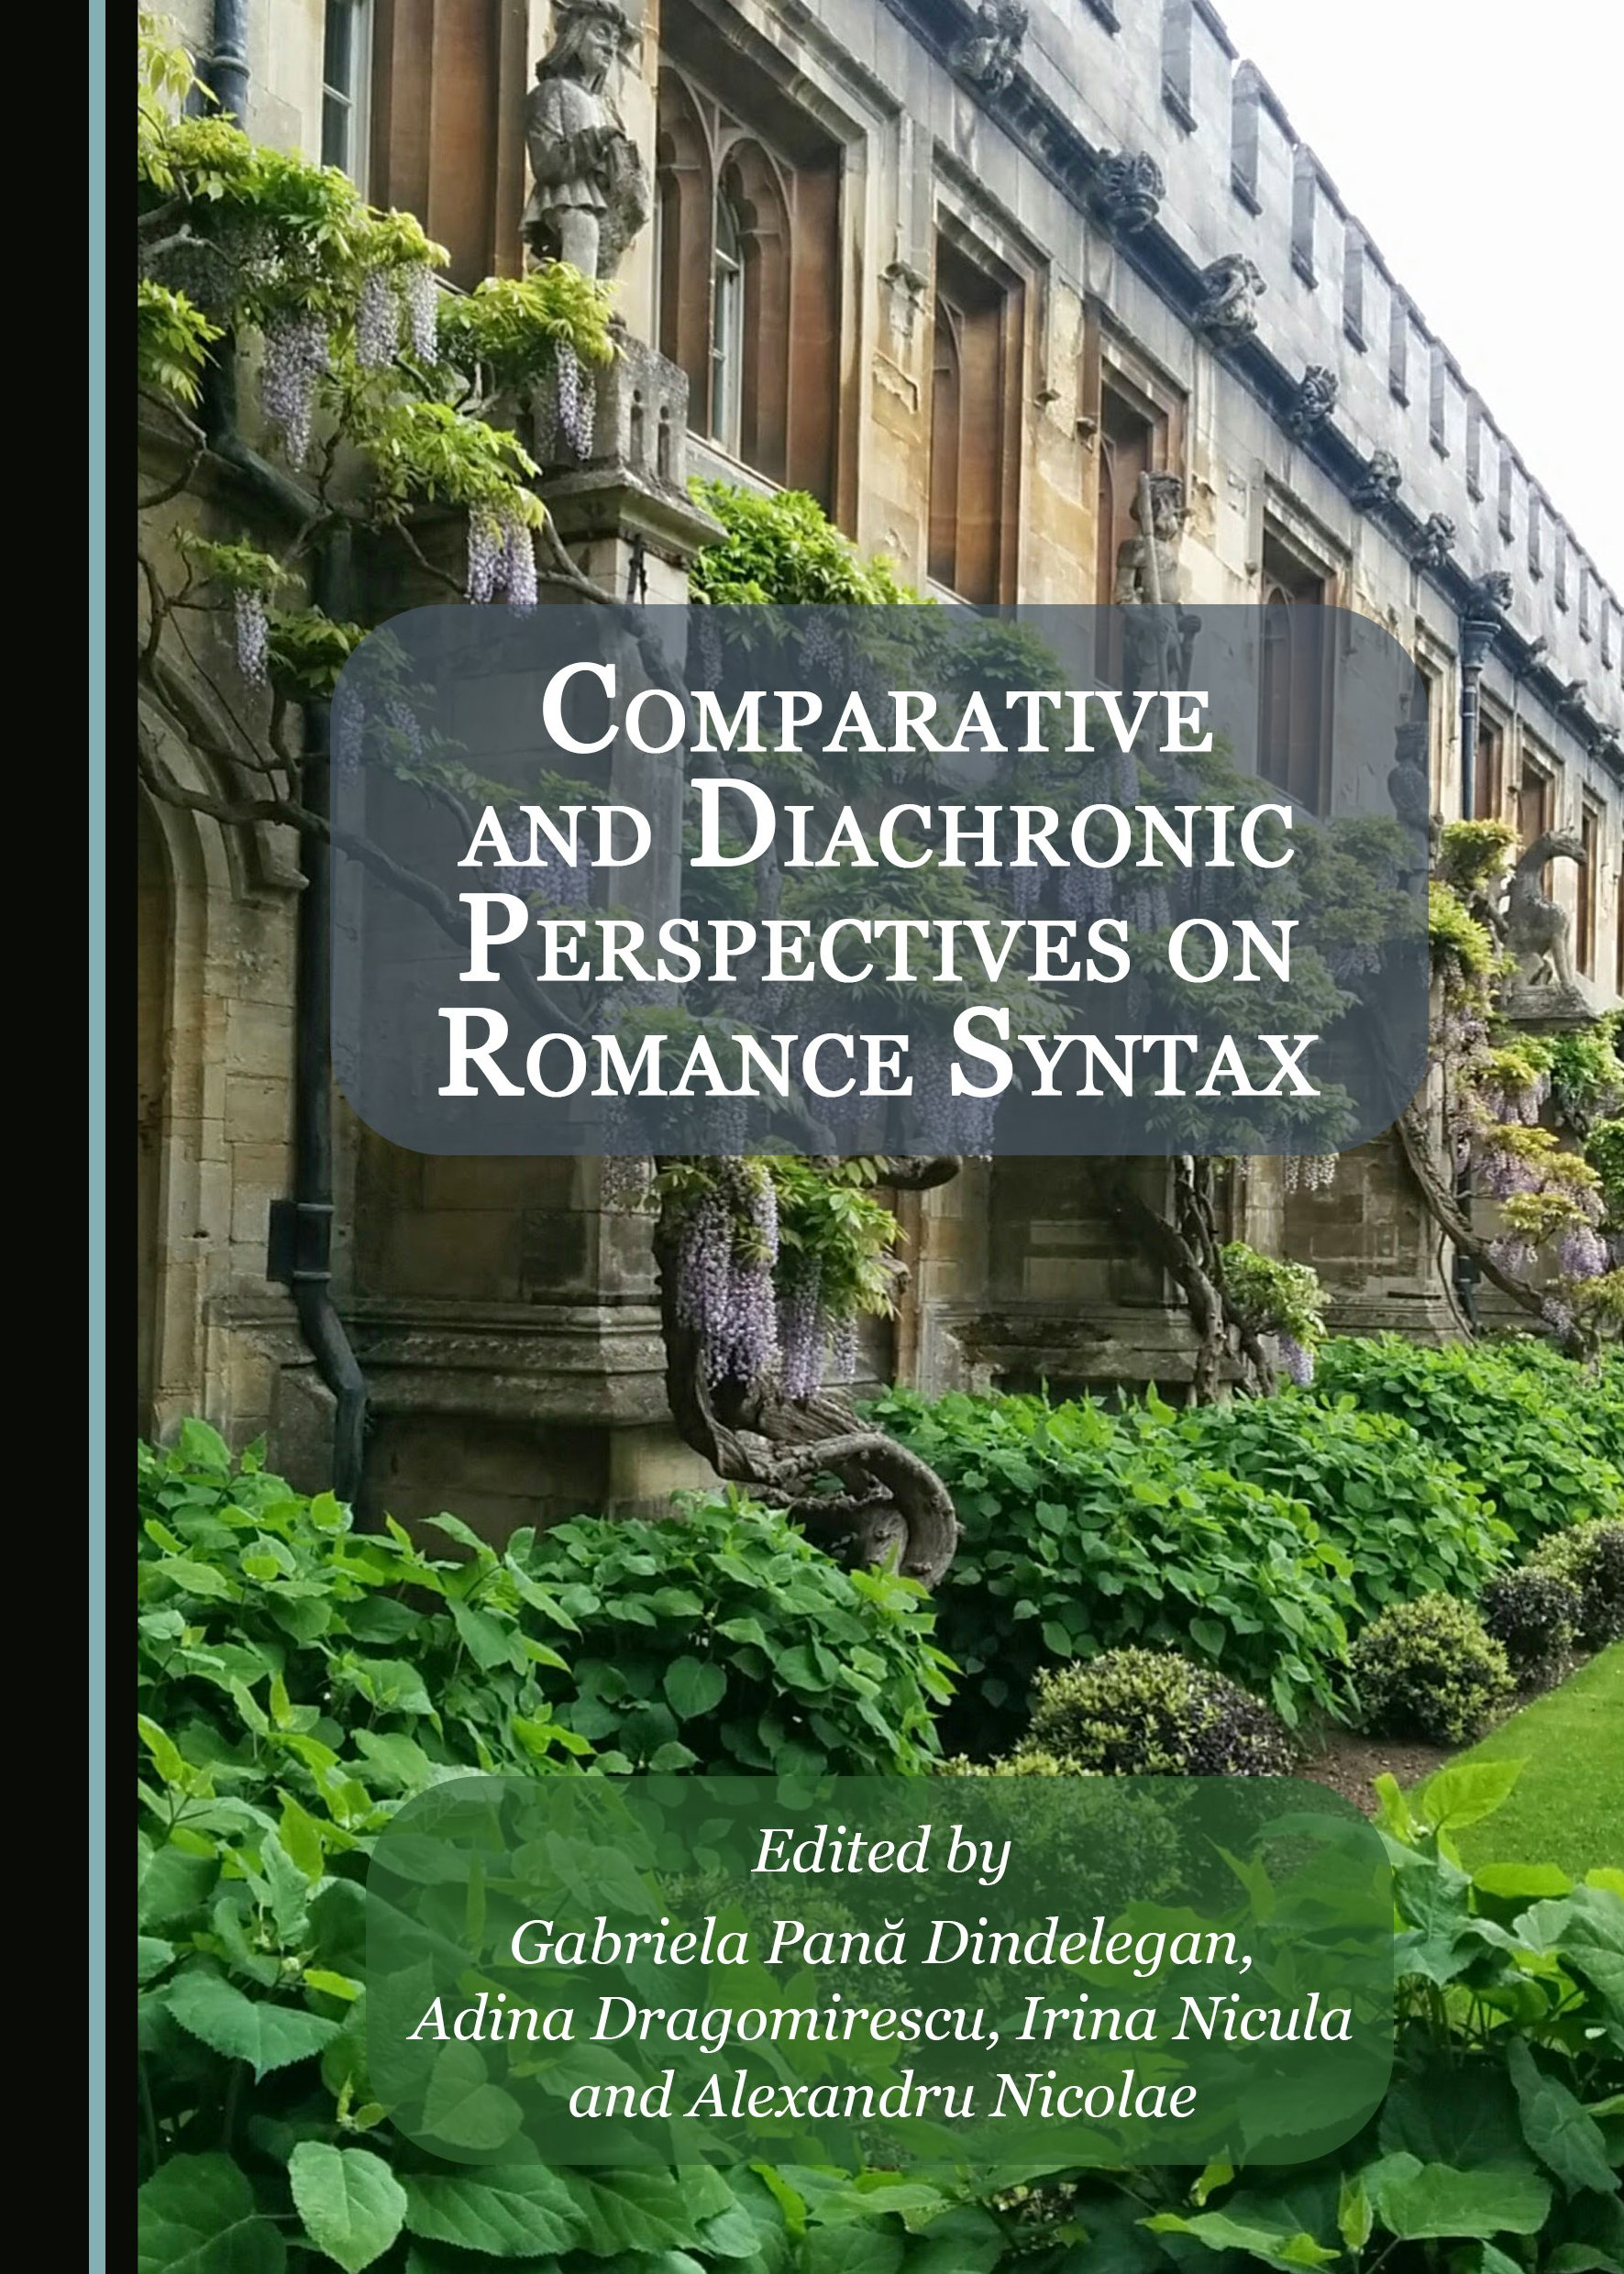 Comparative and Diachronic Perspectives on Romance Syntax